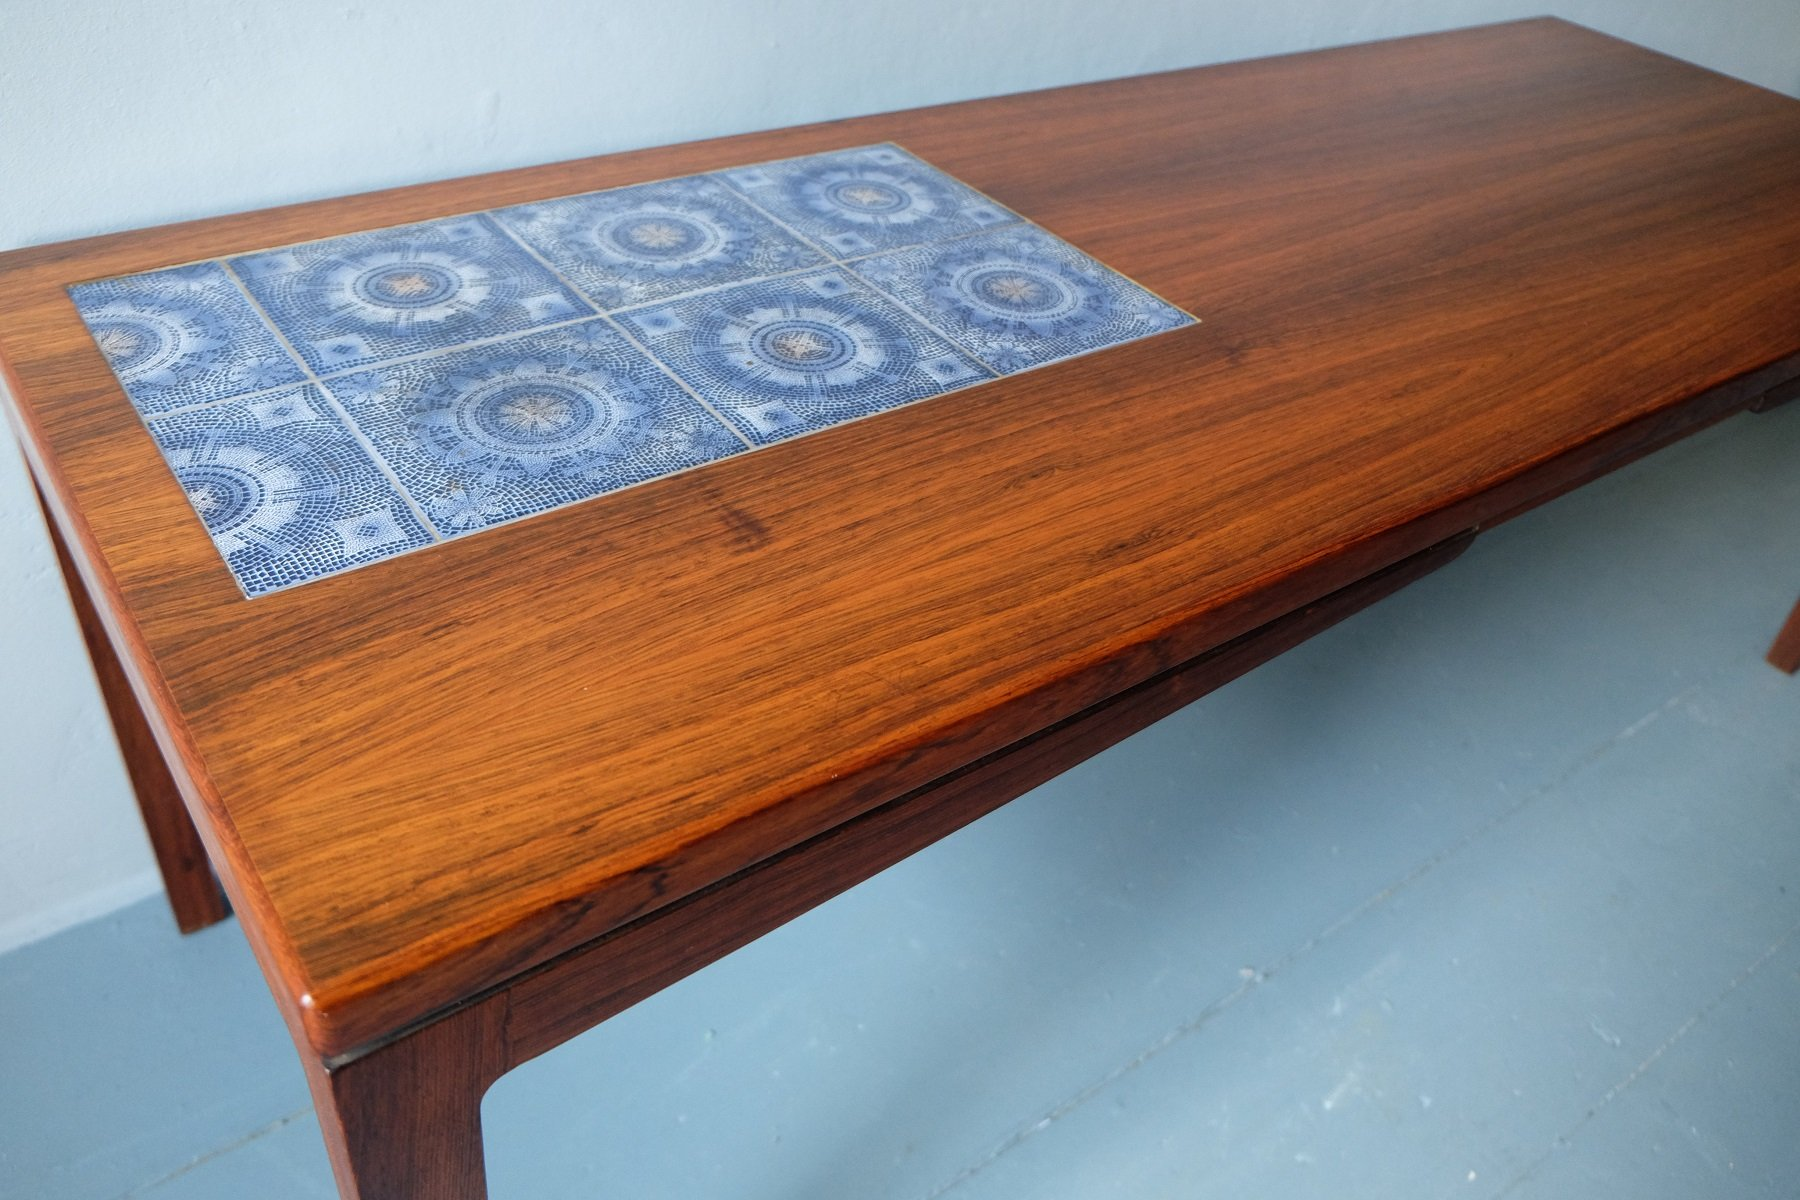 Danish Rosewood Coffee Table With Mosaic Ceramic Tiles 1960s For Sale At Pamono